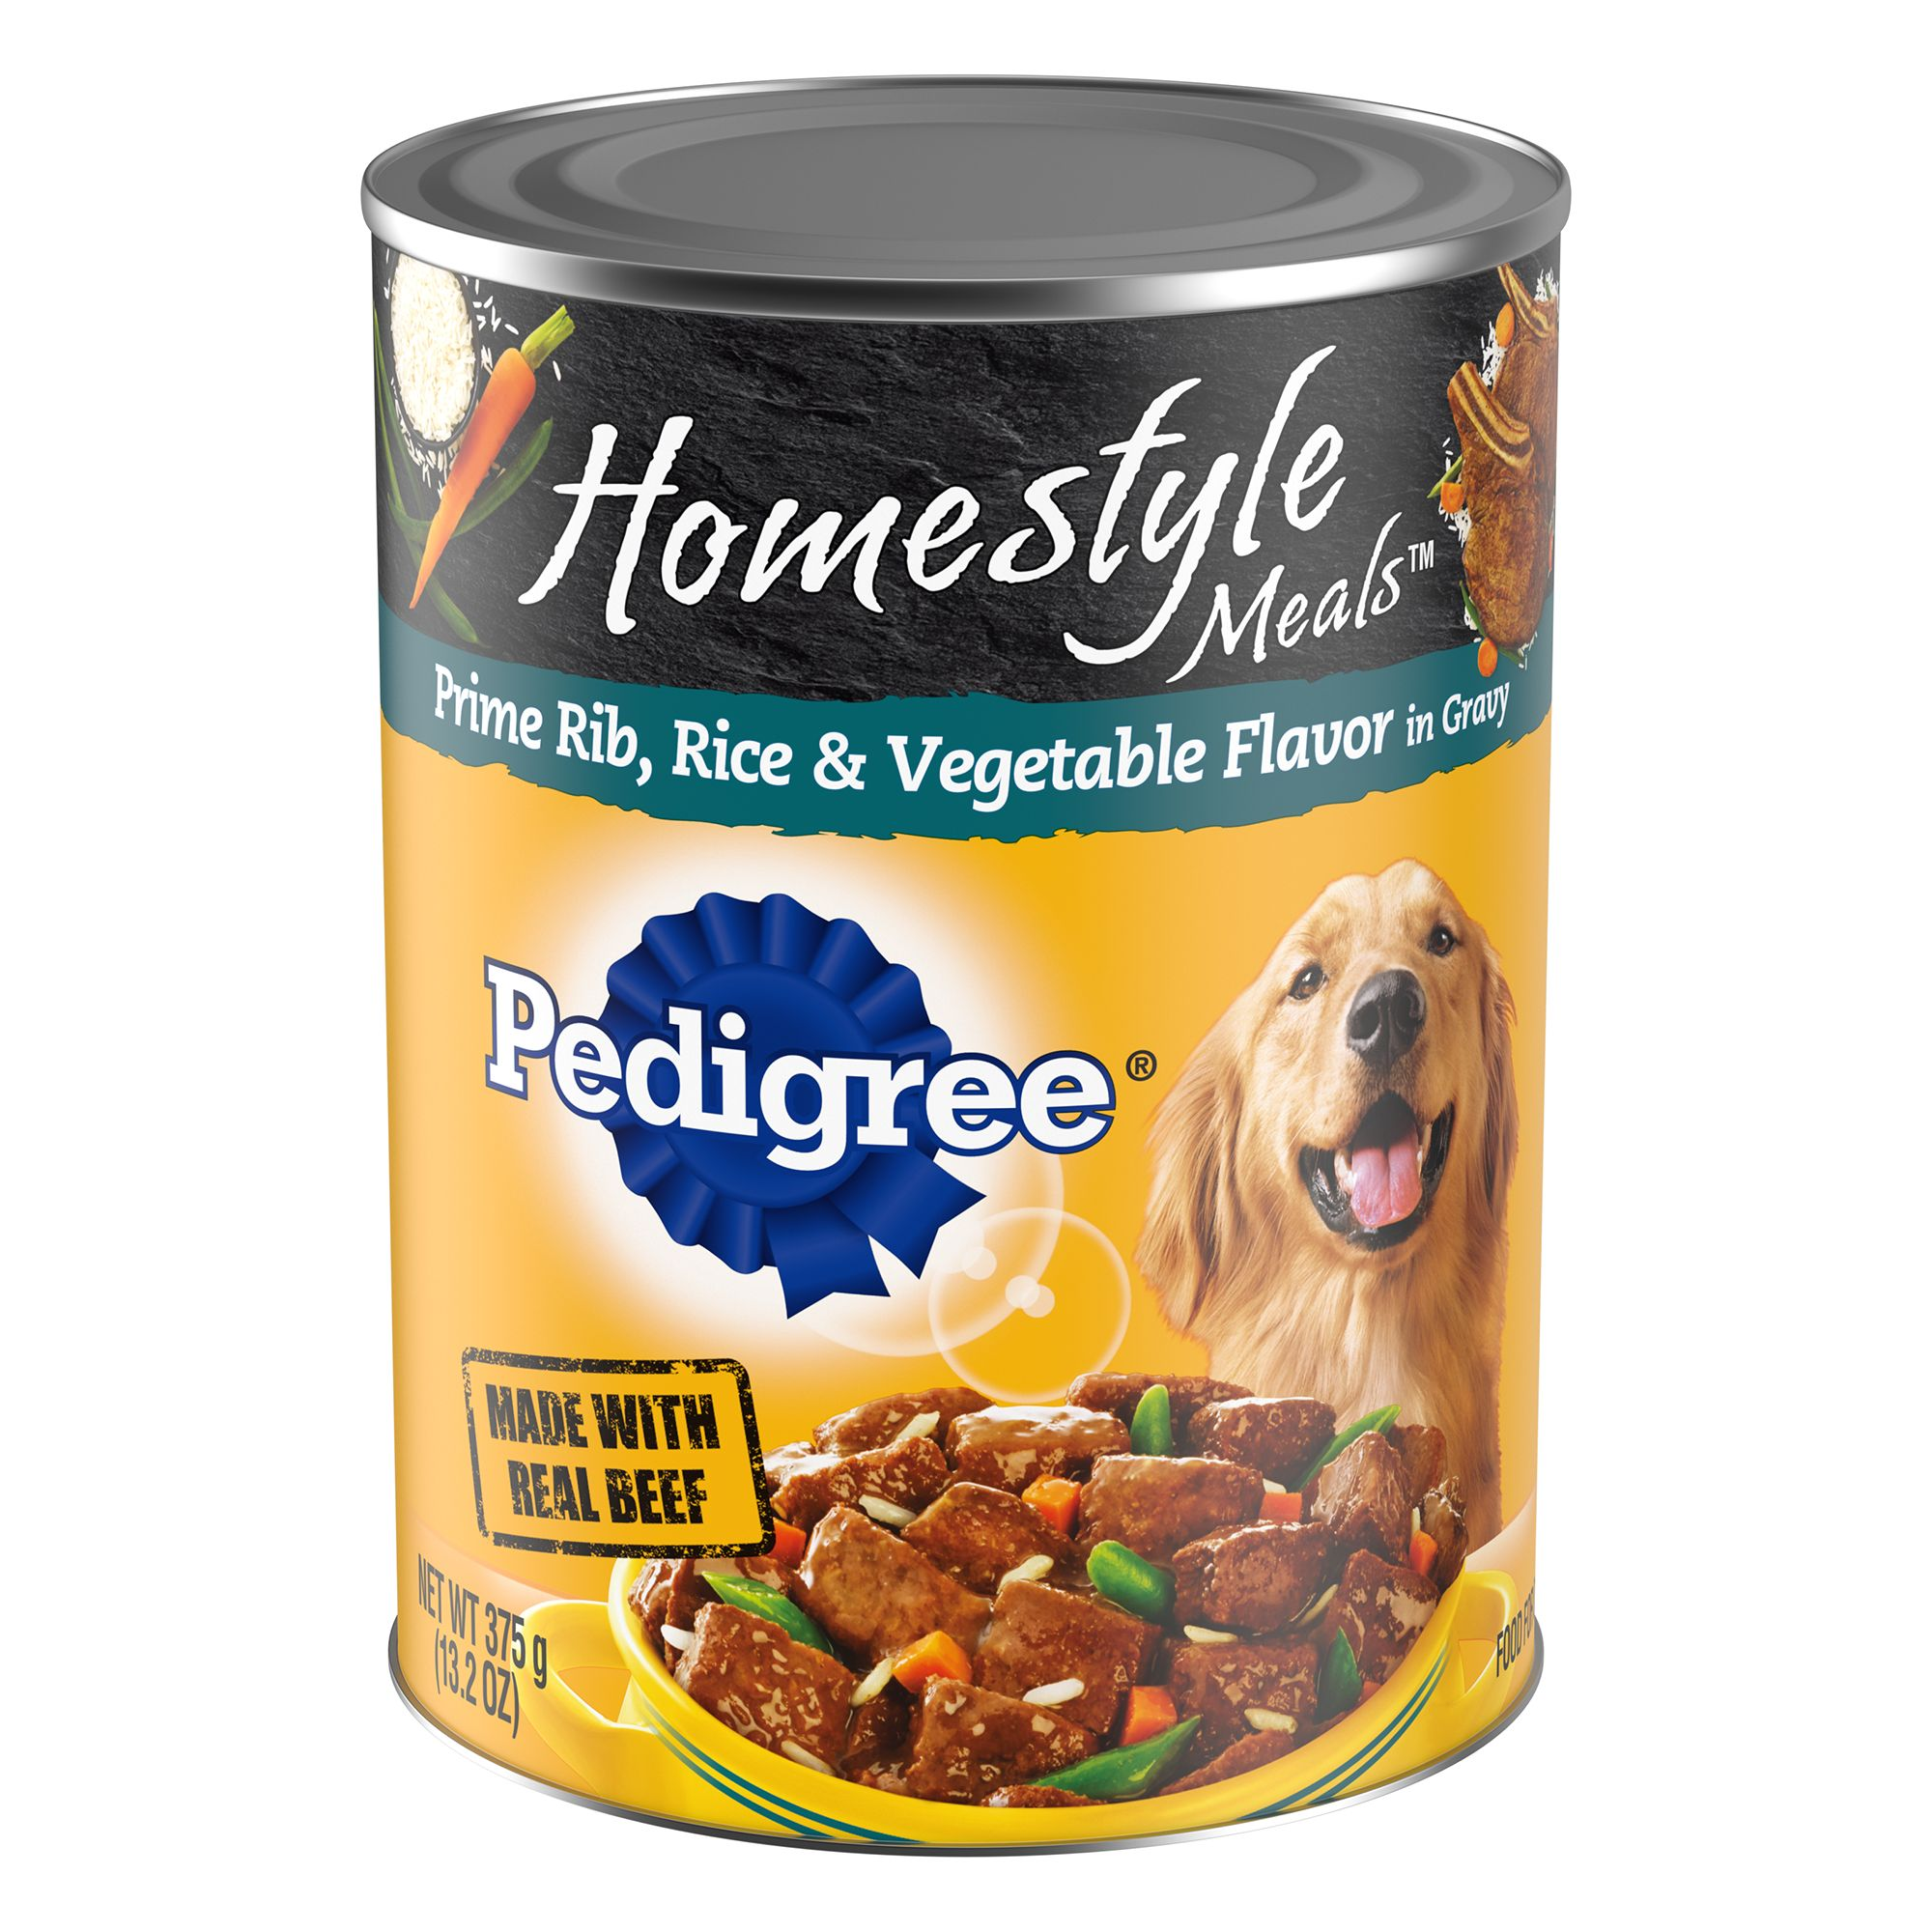 Pedigree Homestyle Meals Adult Dog Food - Prime Rib, Rice and Vegetable size: 13.2 Oz 5237618